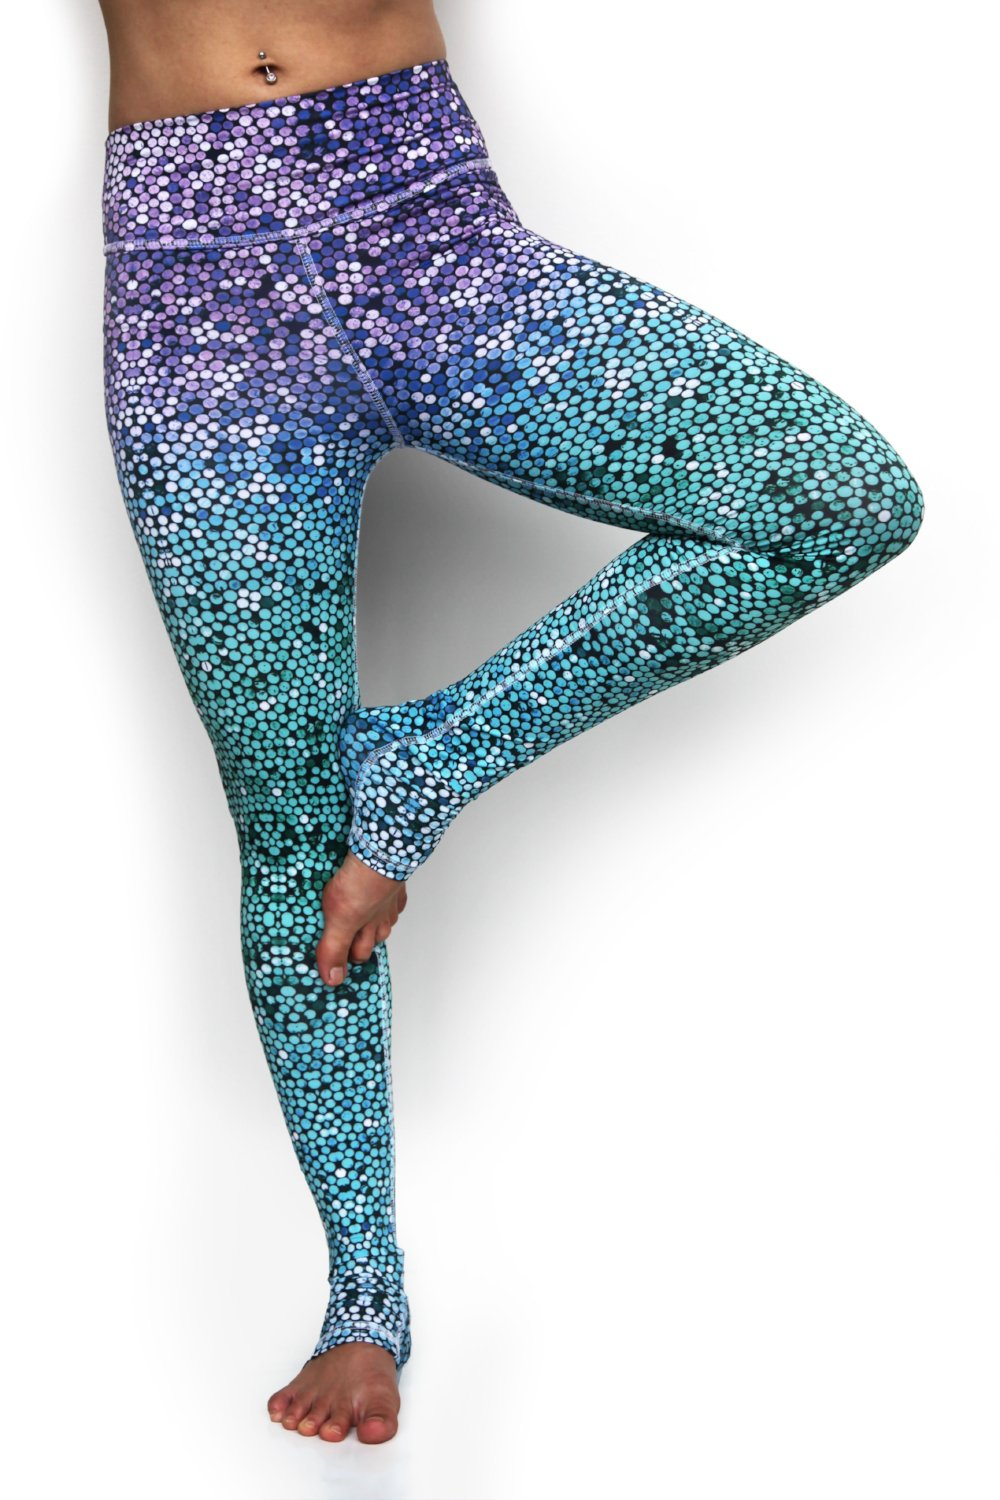 Mosaic Mermaid high waist extra long leggings made from lux eco friendly fabrics. Blue green purple ombre. Available from Uniquely Yoga